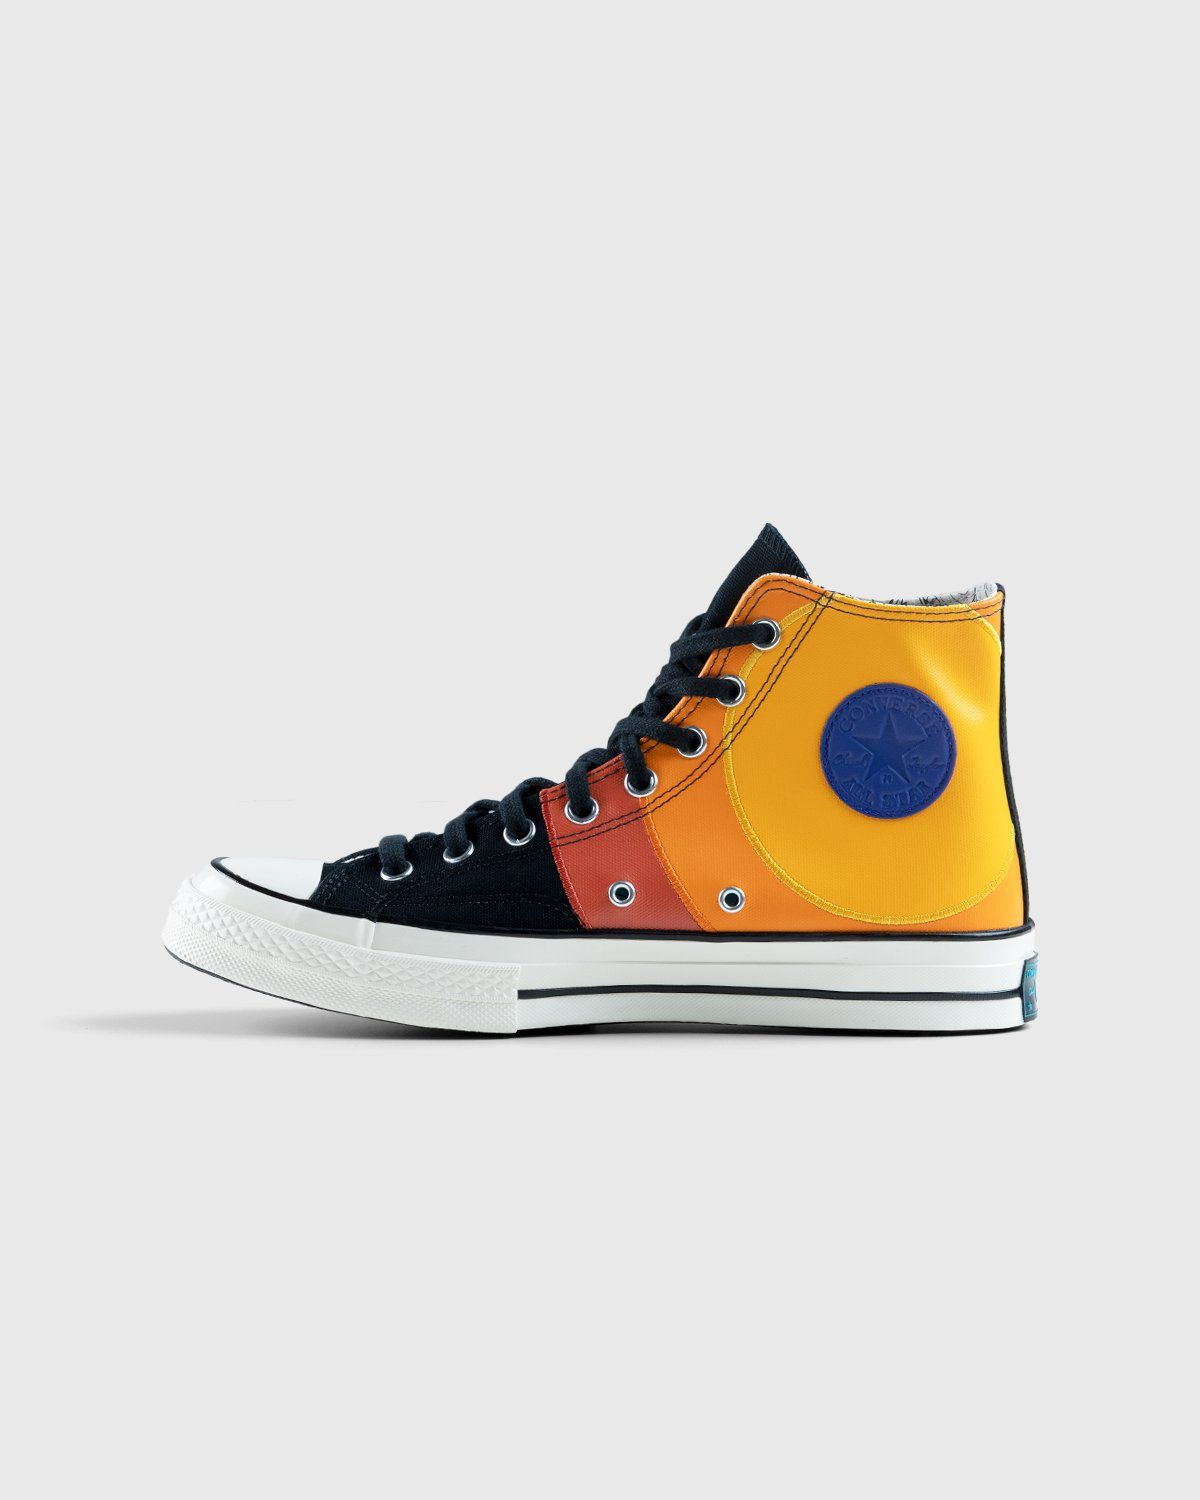 Converse x Space Jam: A New Legacy – Chuck Taylor 70 Multi - Image 5